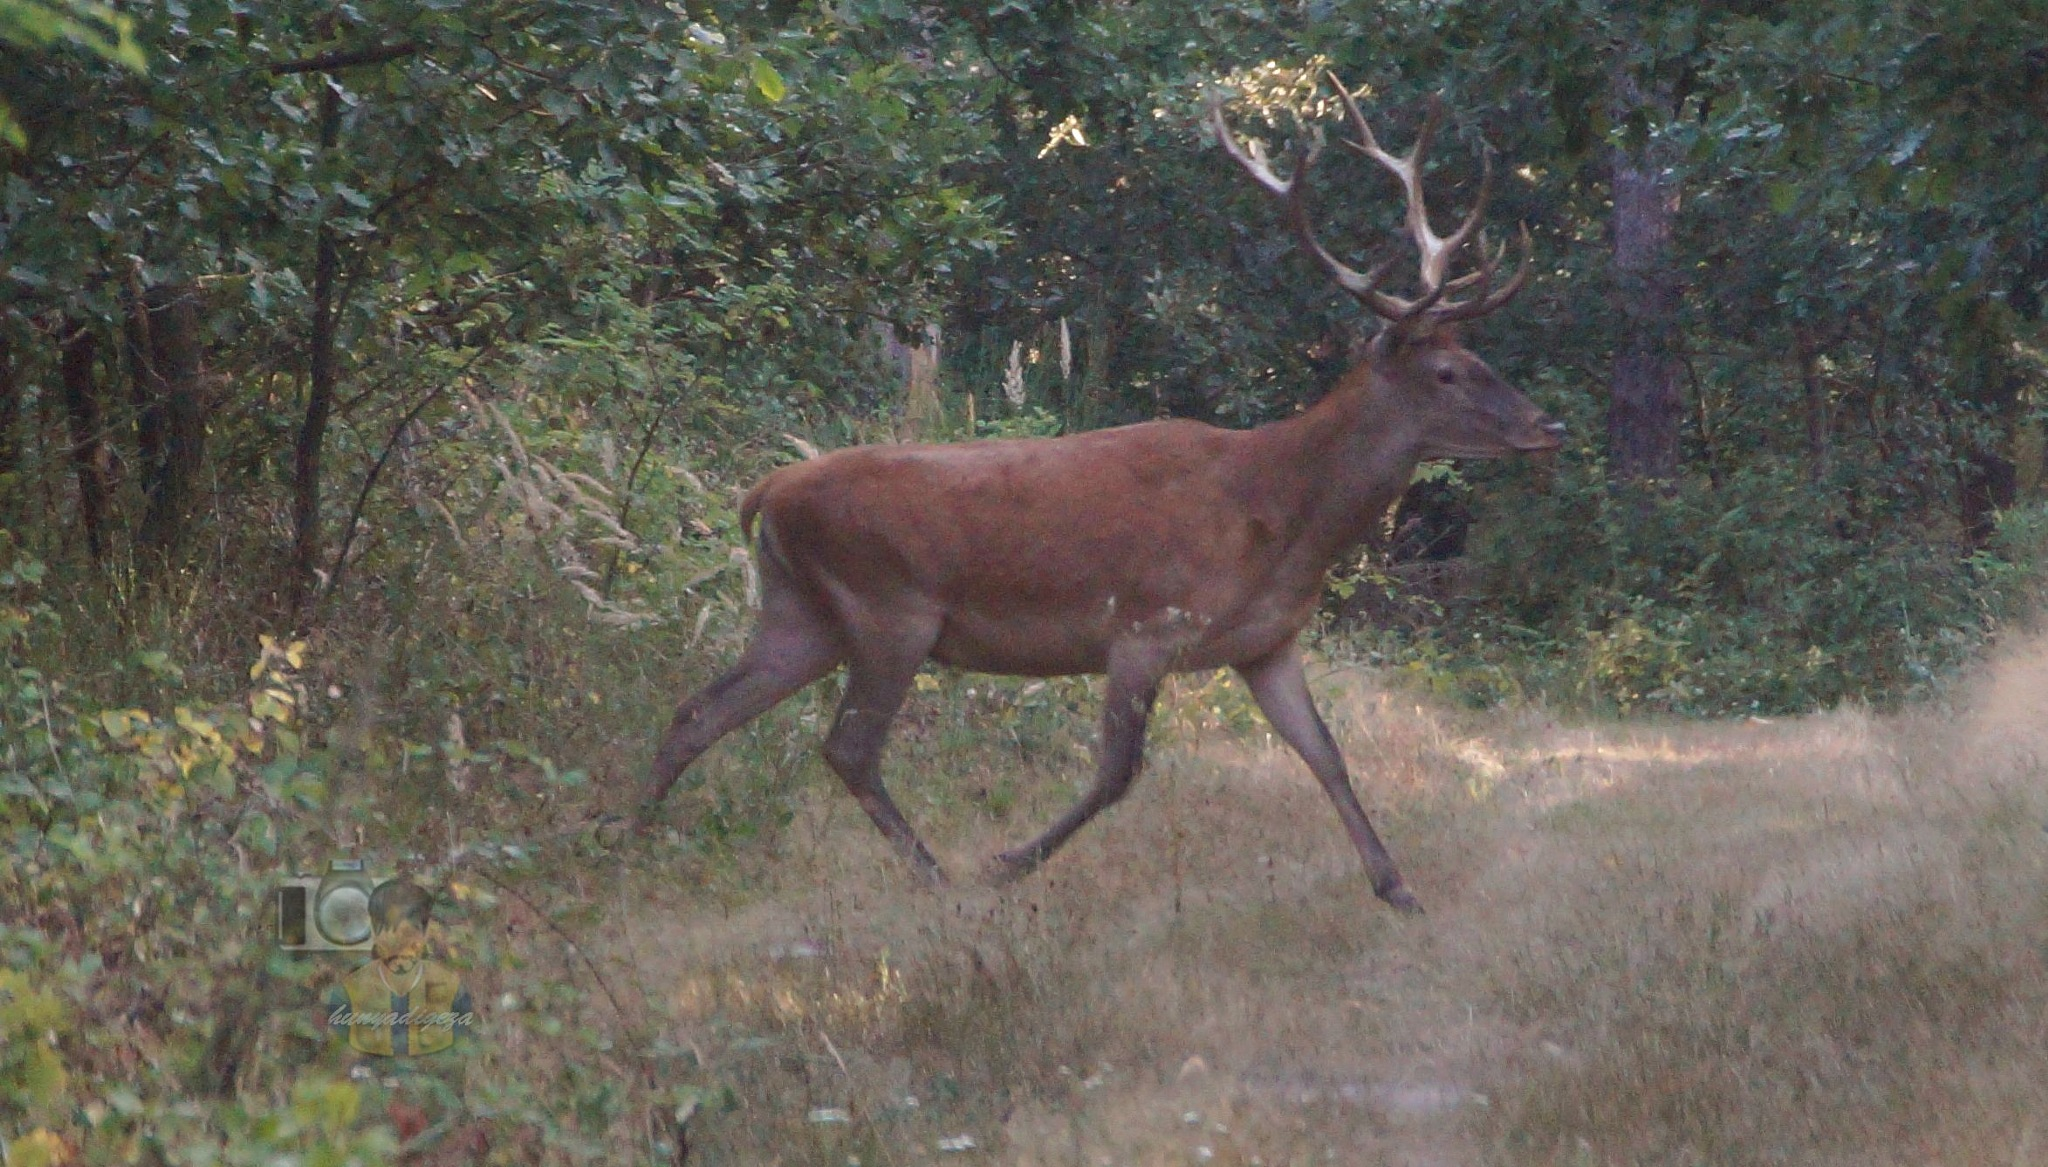 Aug. 01, red deer buck on forest path #3 by hunyadigeza